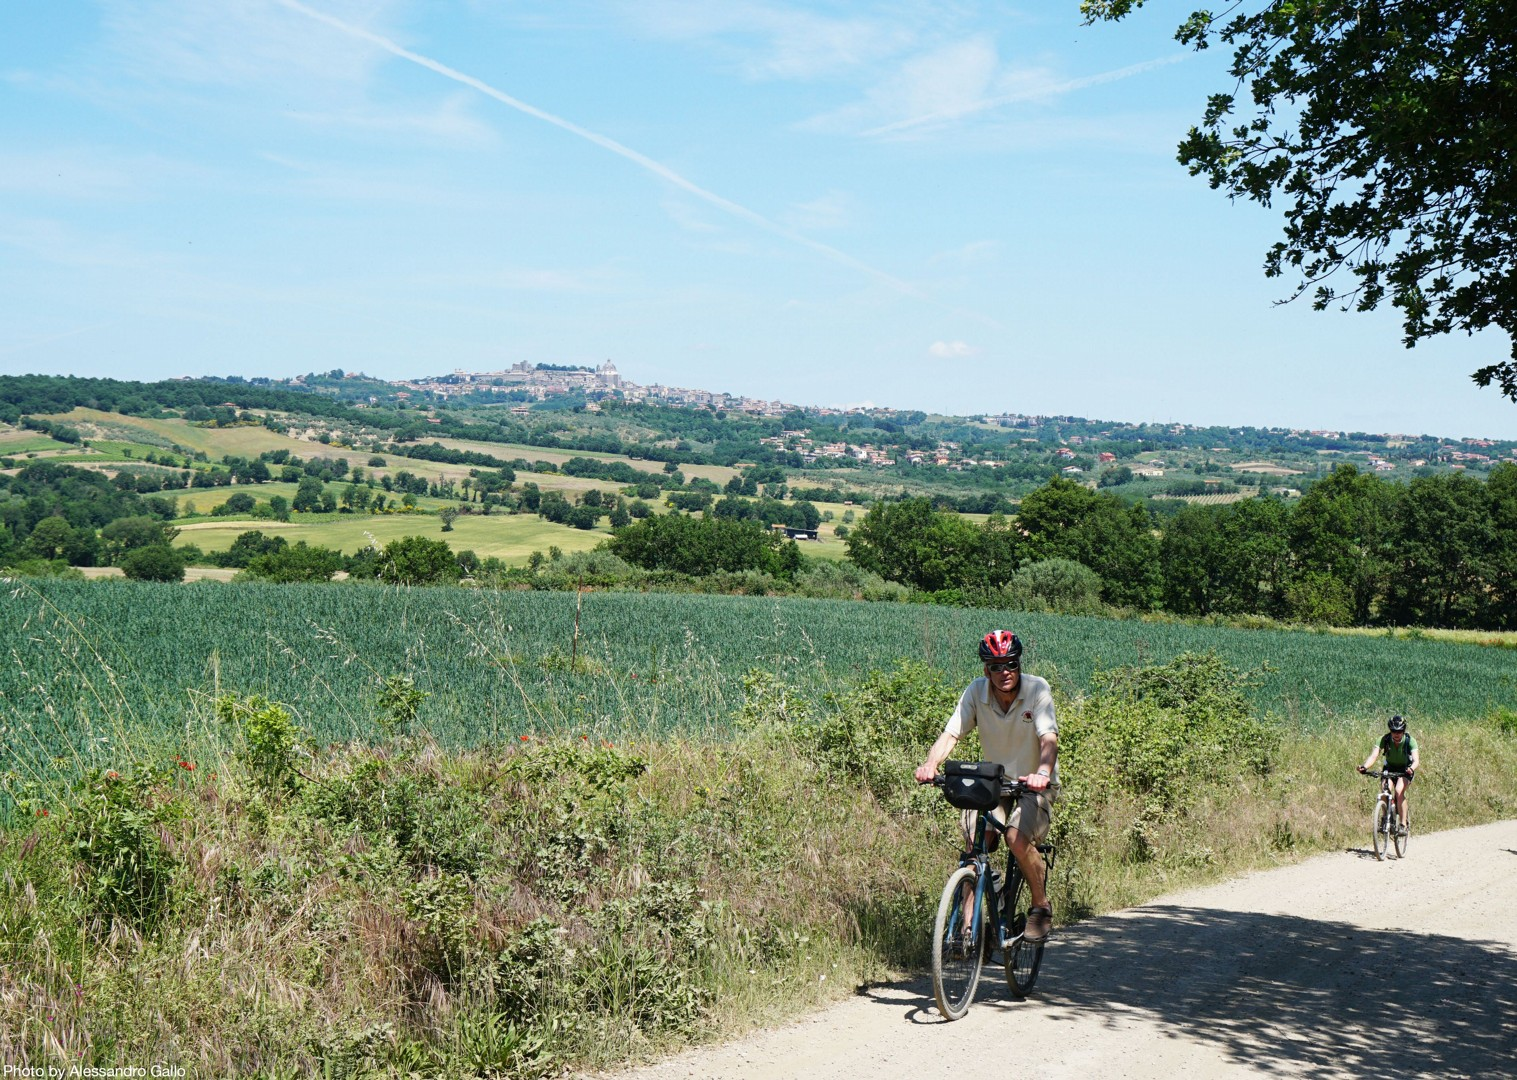 torgiano-italy-spirit-of-umbria-self-guided-leisure-cycling-holiday.JPG - NEW! Italy - Spirit of Umbria - Family Cycling